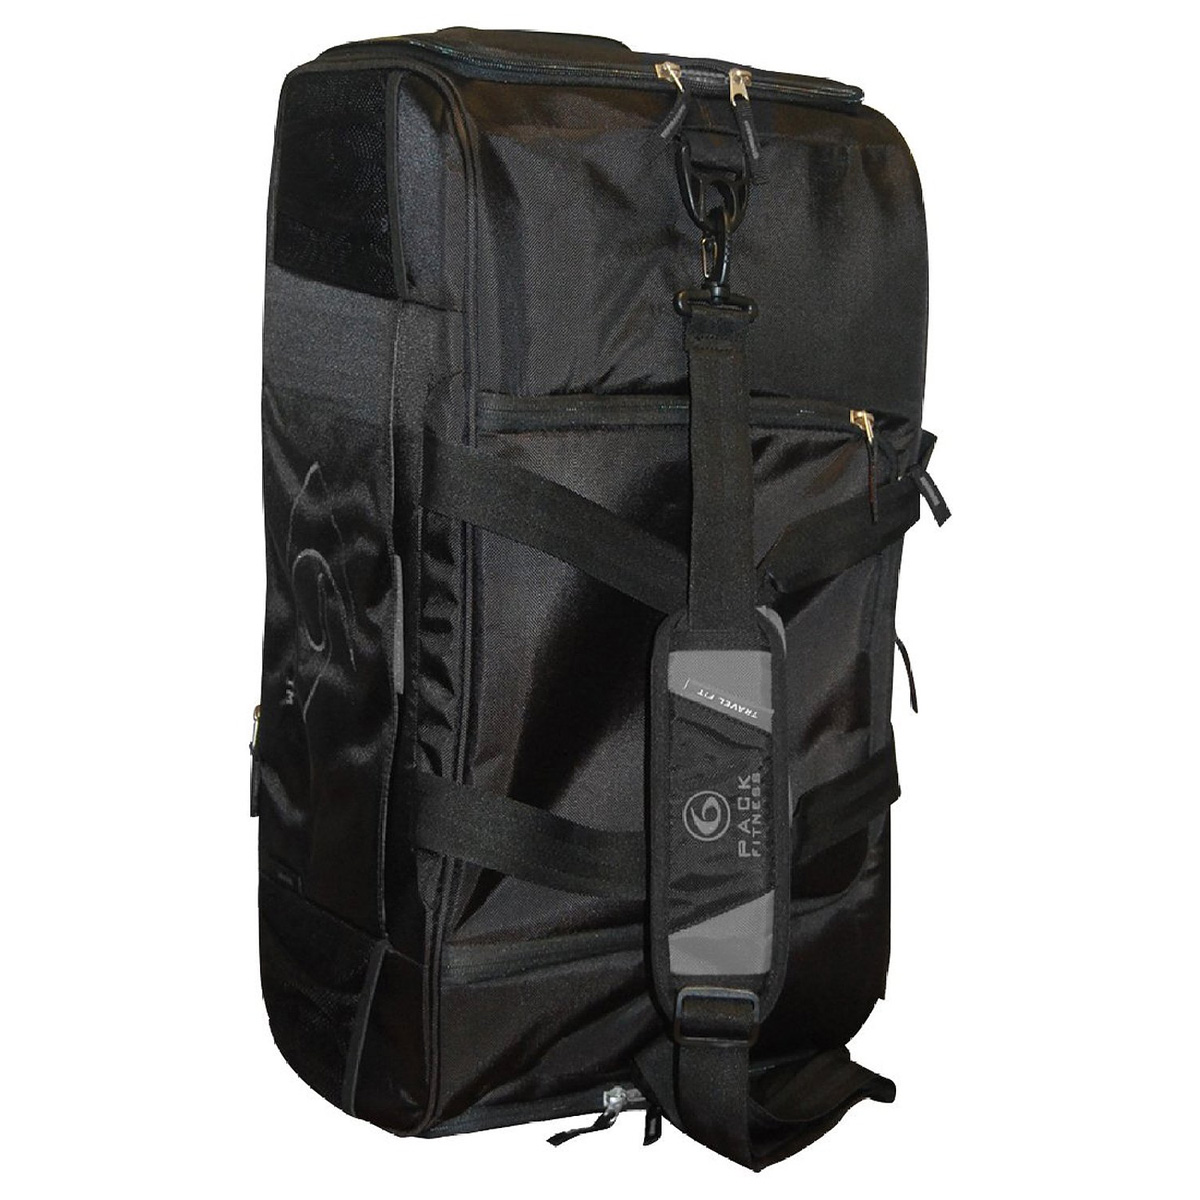 6 Pack Fitness Beast Meal Management Duffel Bag - Stealth ... f857fcc1abf38